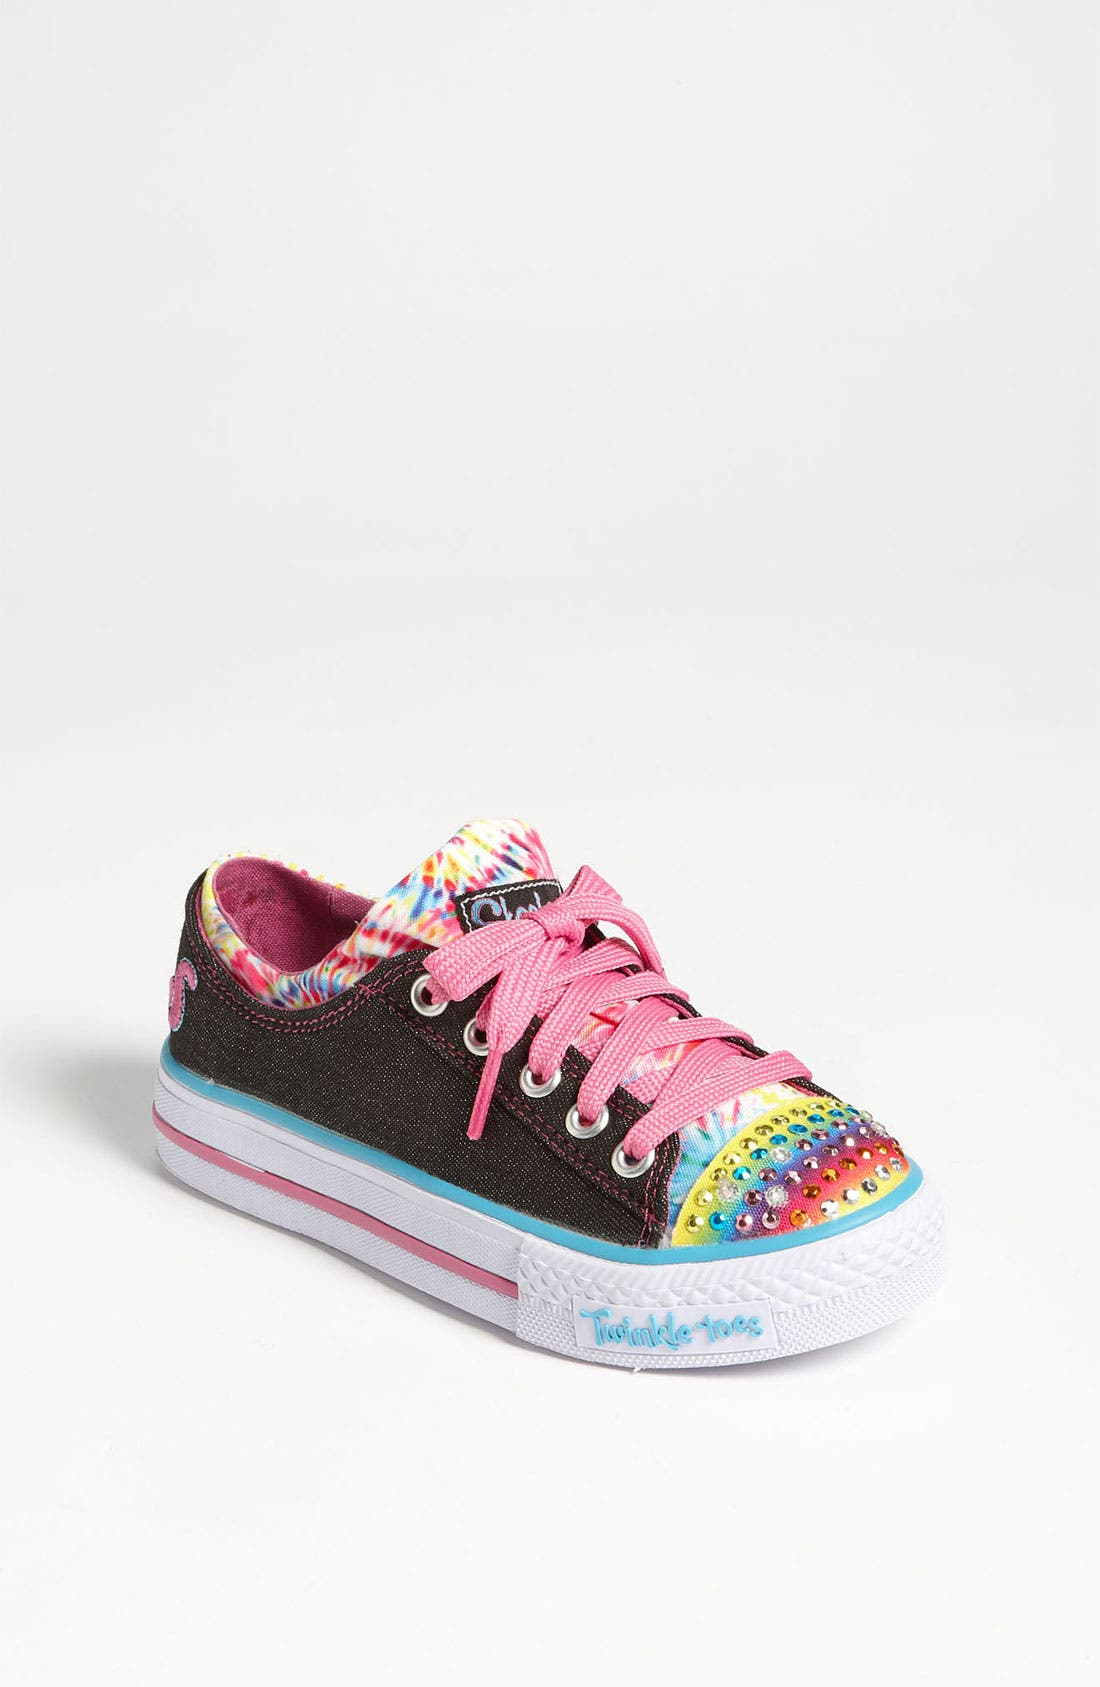 Main Image - SKECHERS 'Shuffle Ups - Much Love' Sneaker (Toddler & Little Kid)